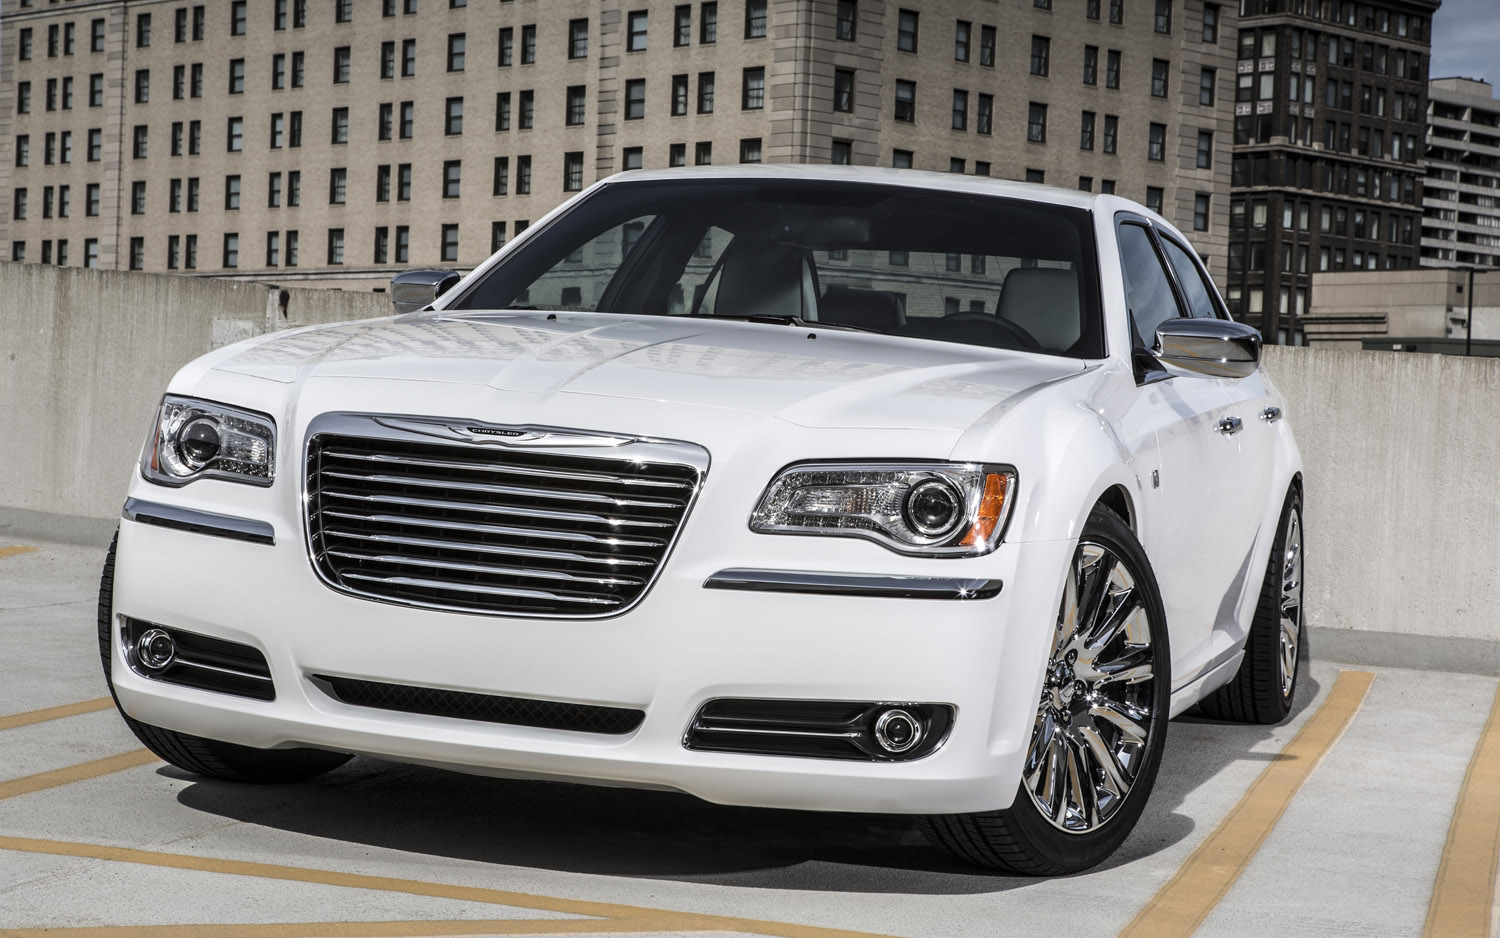 small resolution of 2013 chrysler 300 motown special edition celebrates detroit music